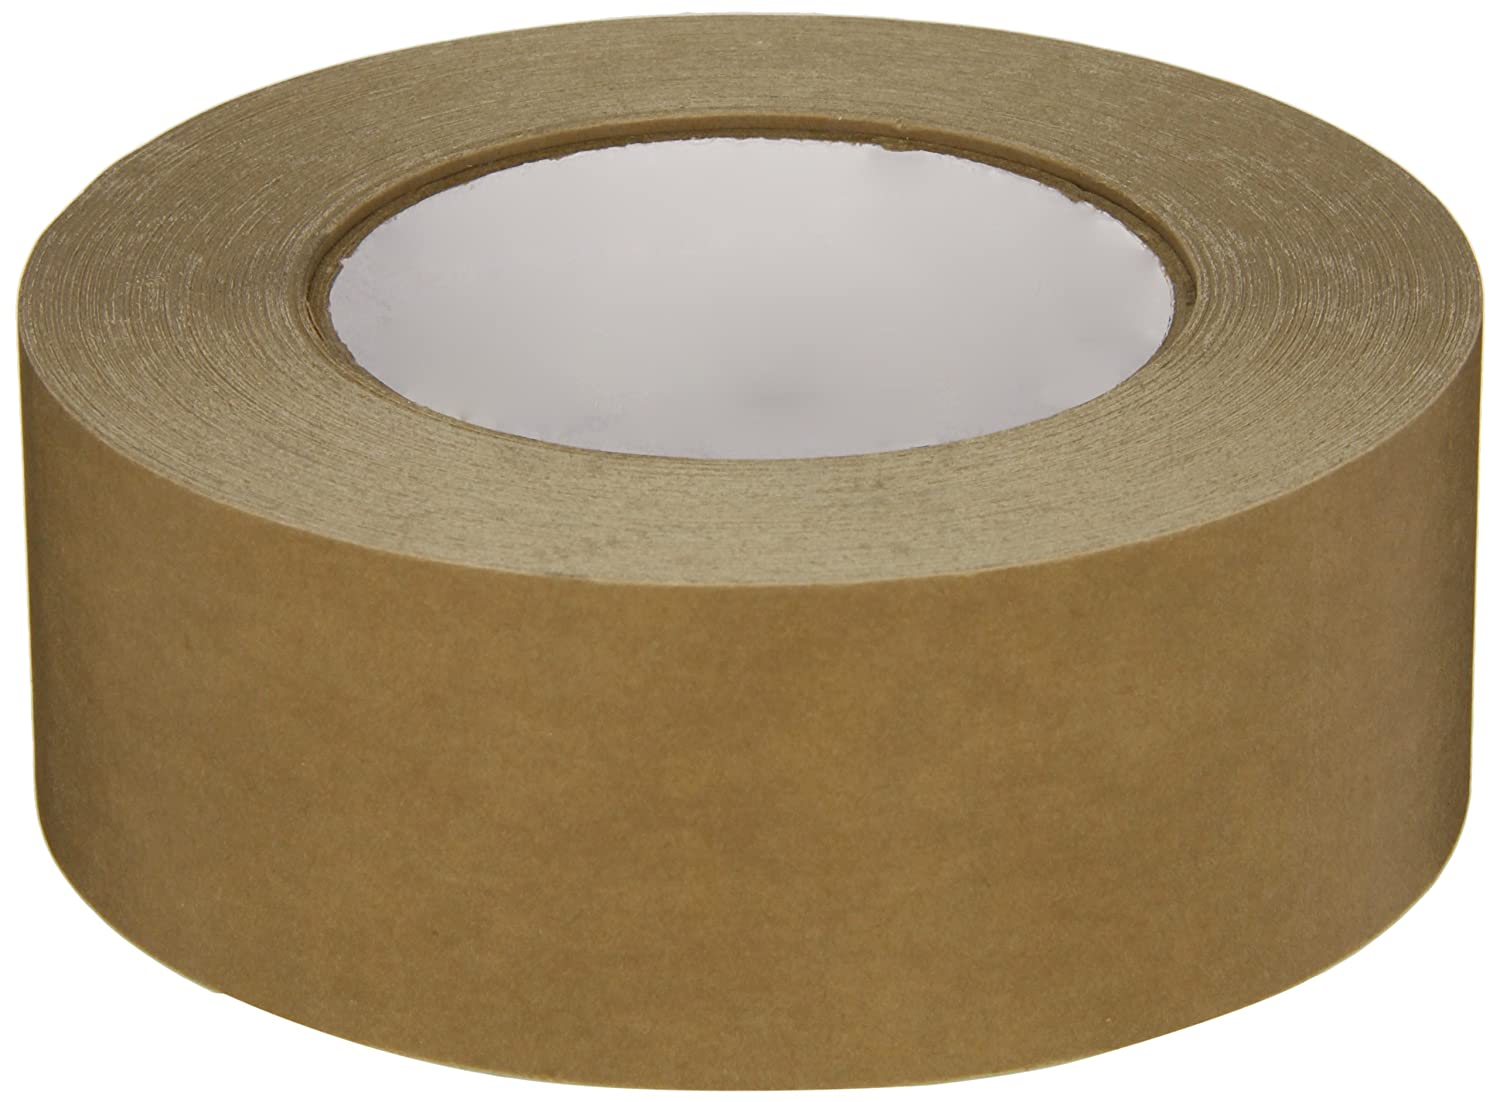 Intertape 530 Synthetic Rubber Utility Grade Flatback Adhesive Tape, 0.18mm Thick x 54.8m Length x 48mm Width, Brown (Case of 24 Rolls) by Intertape B009AFEJTO